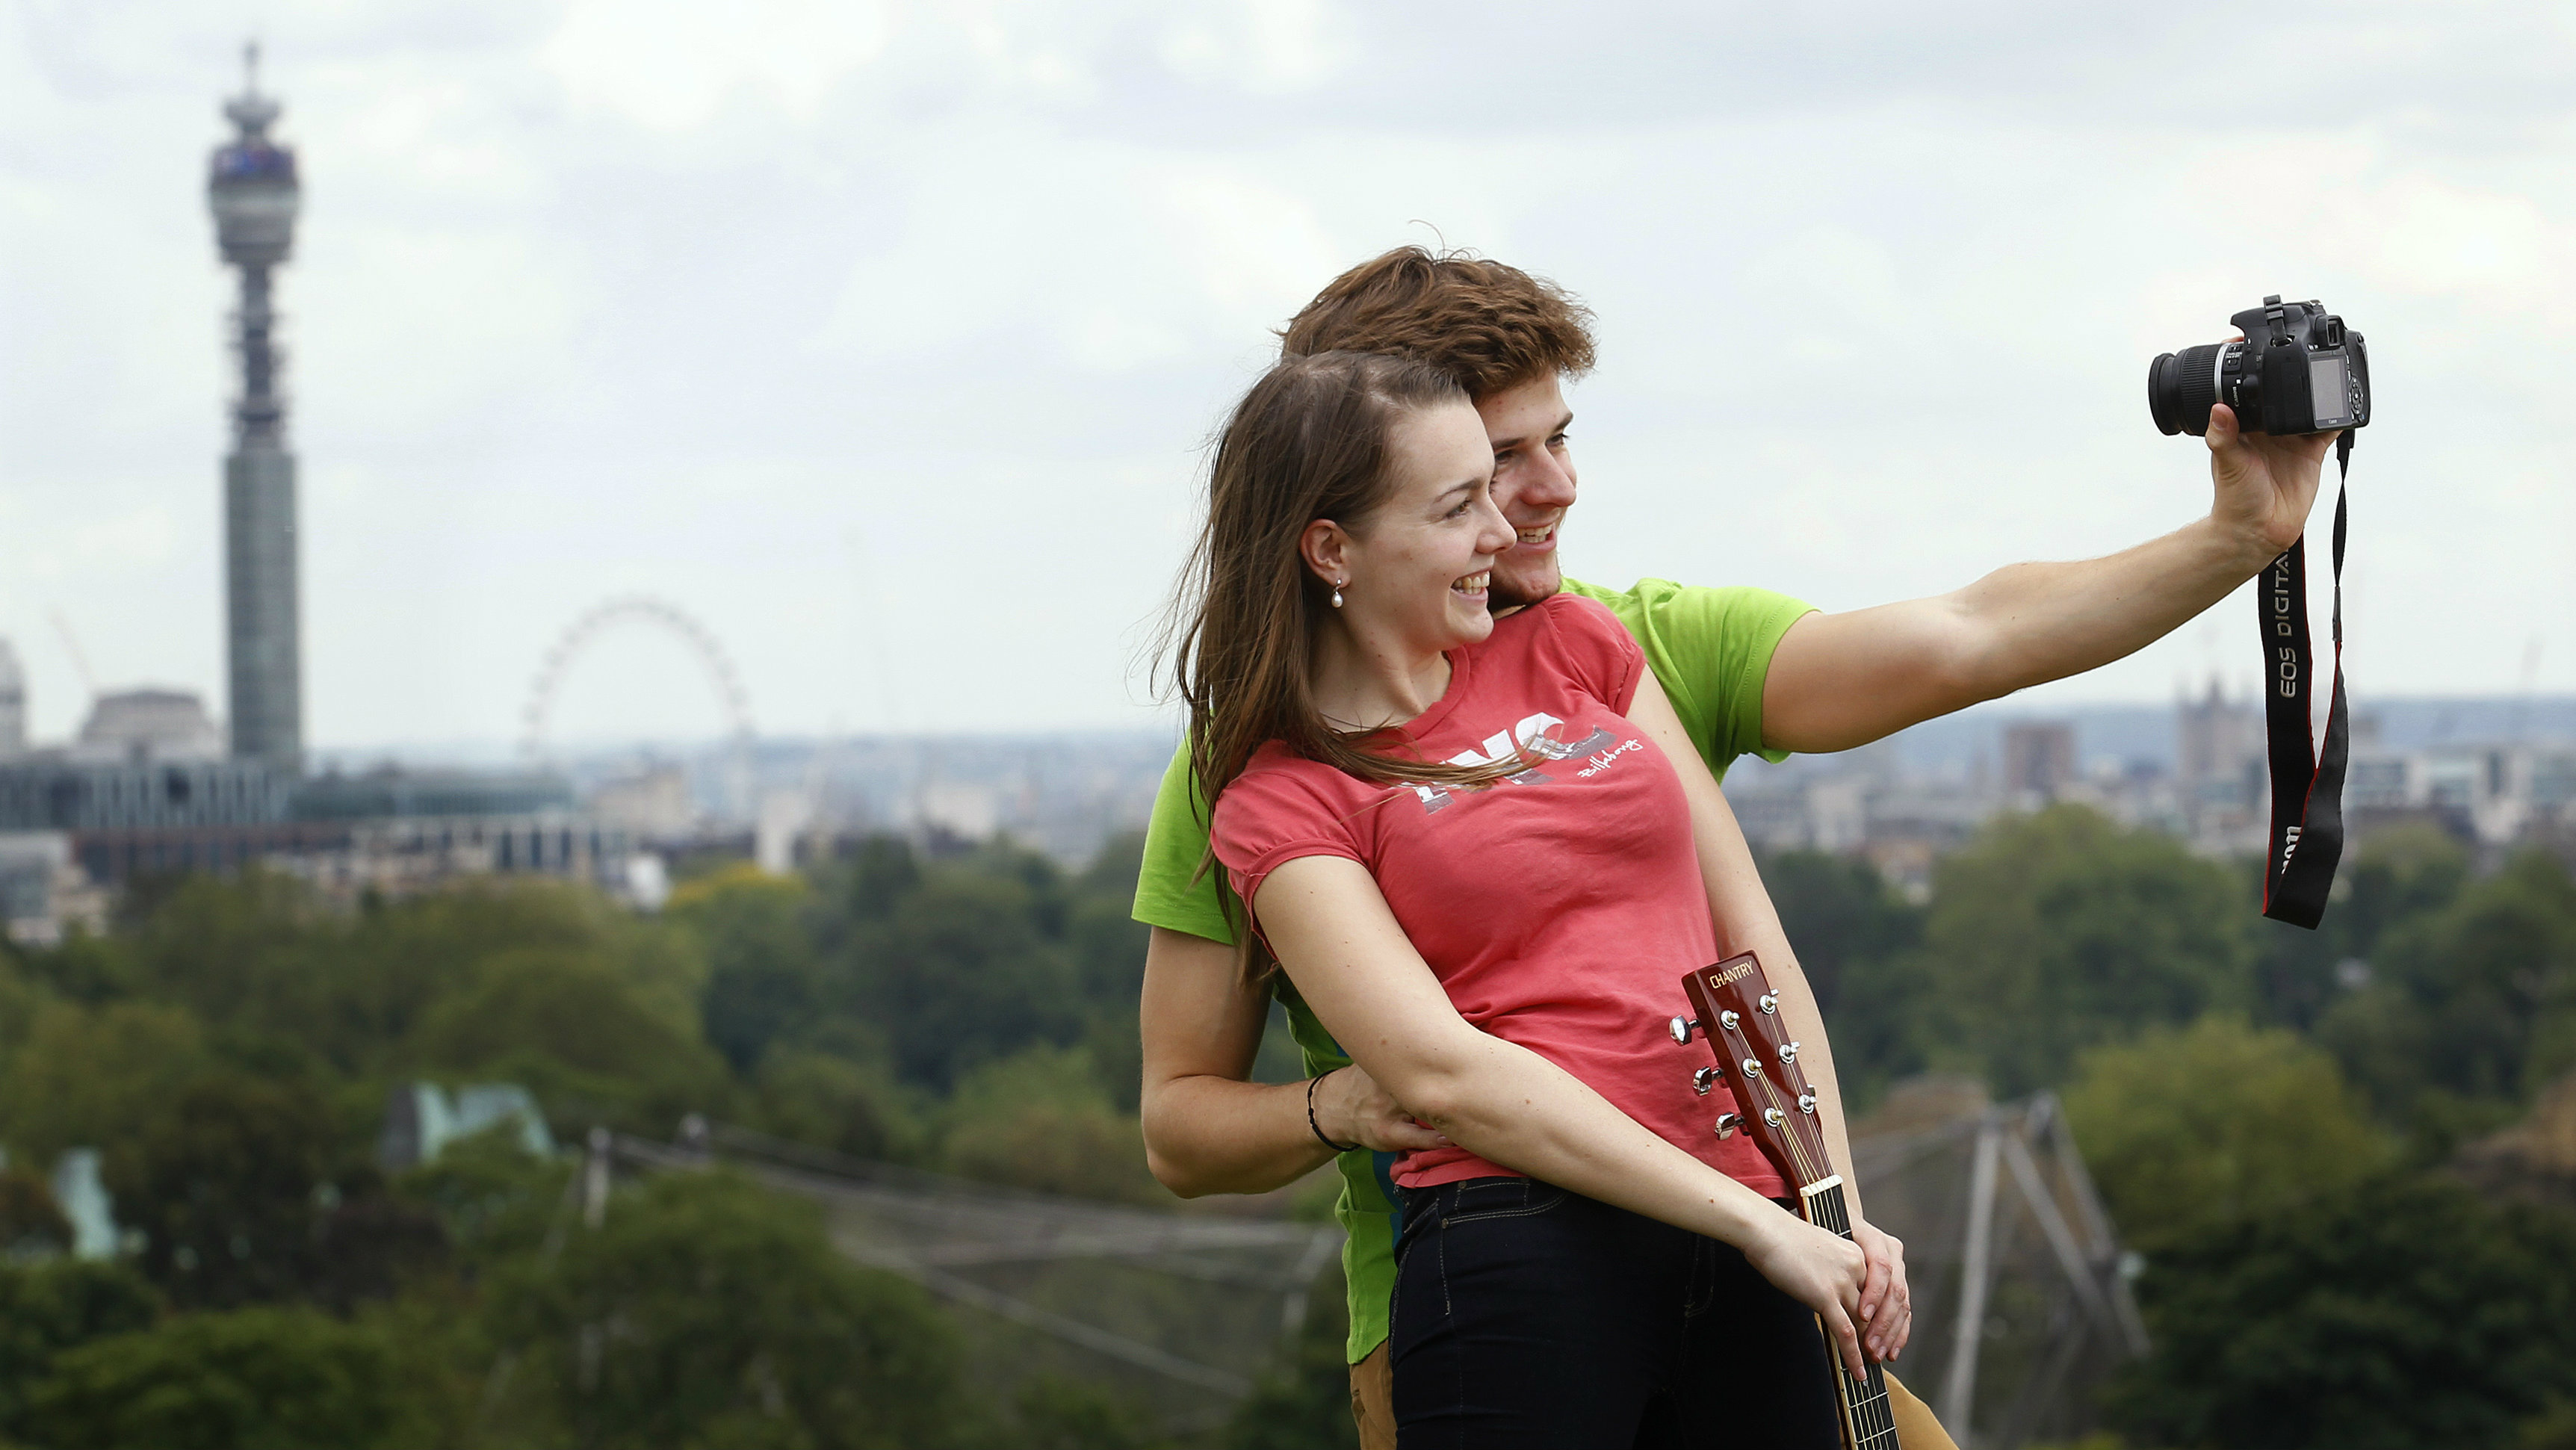 Mardi MacGregor from London poses with her boyfriend Bastian Guhl from Berlin, on Primrose Hill in London June 19, 2012. REUTERS/Suzanne Plunkett (BRITAIN - Tags: SOCIETY)